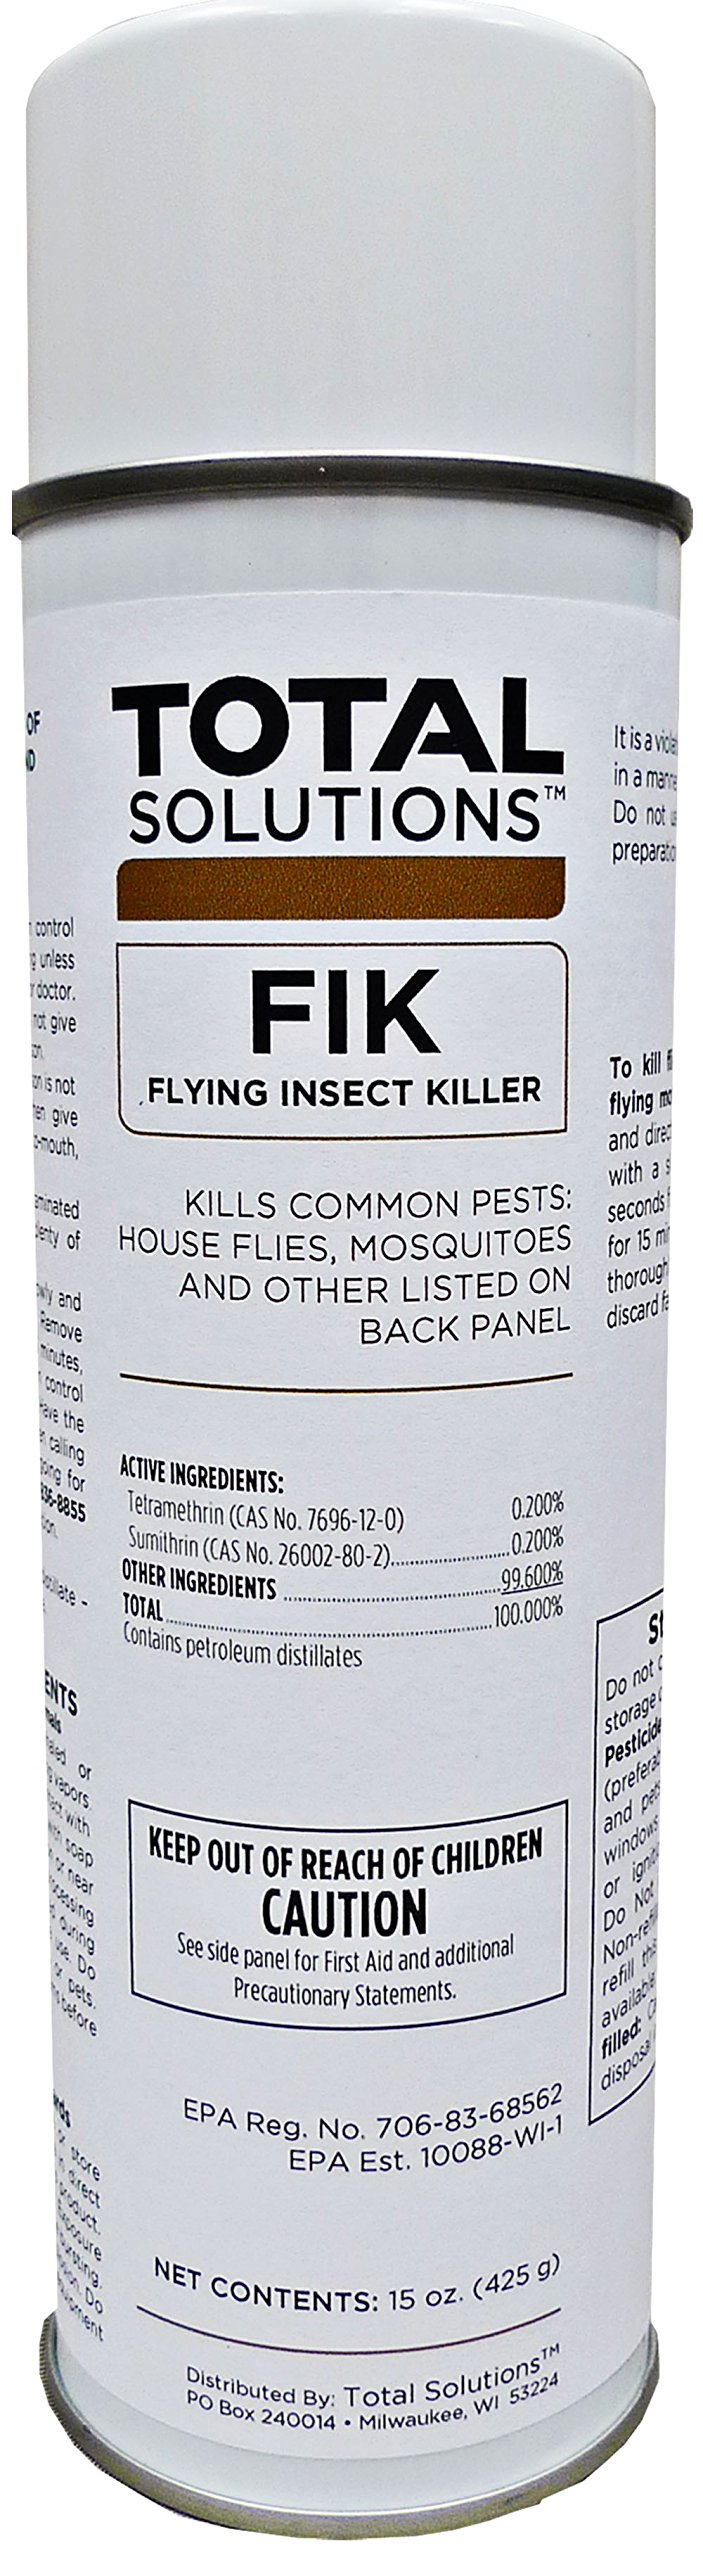 FIK - Flying Insect Killer, Knocks flying insects out of the air - 12 Can Case